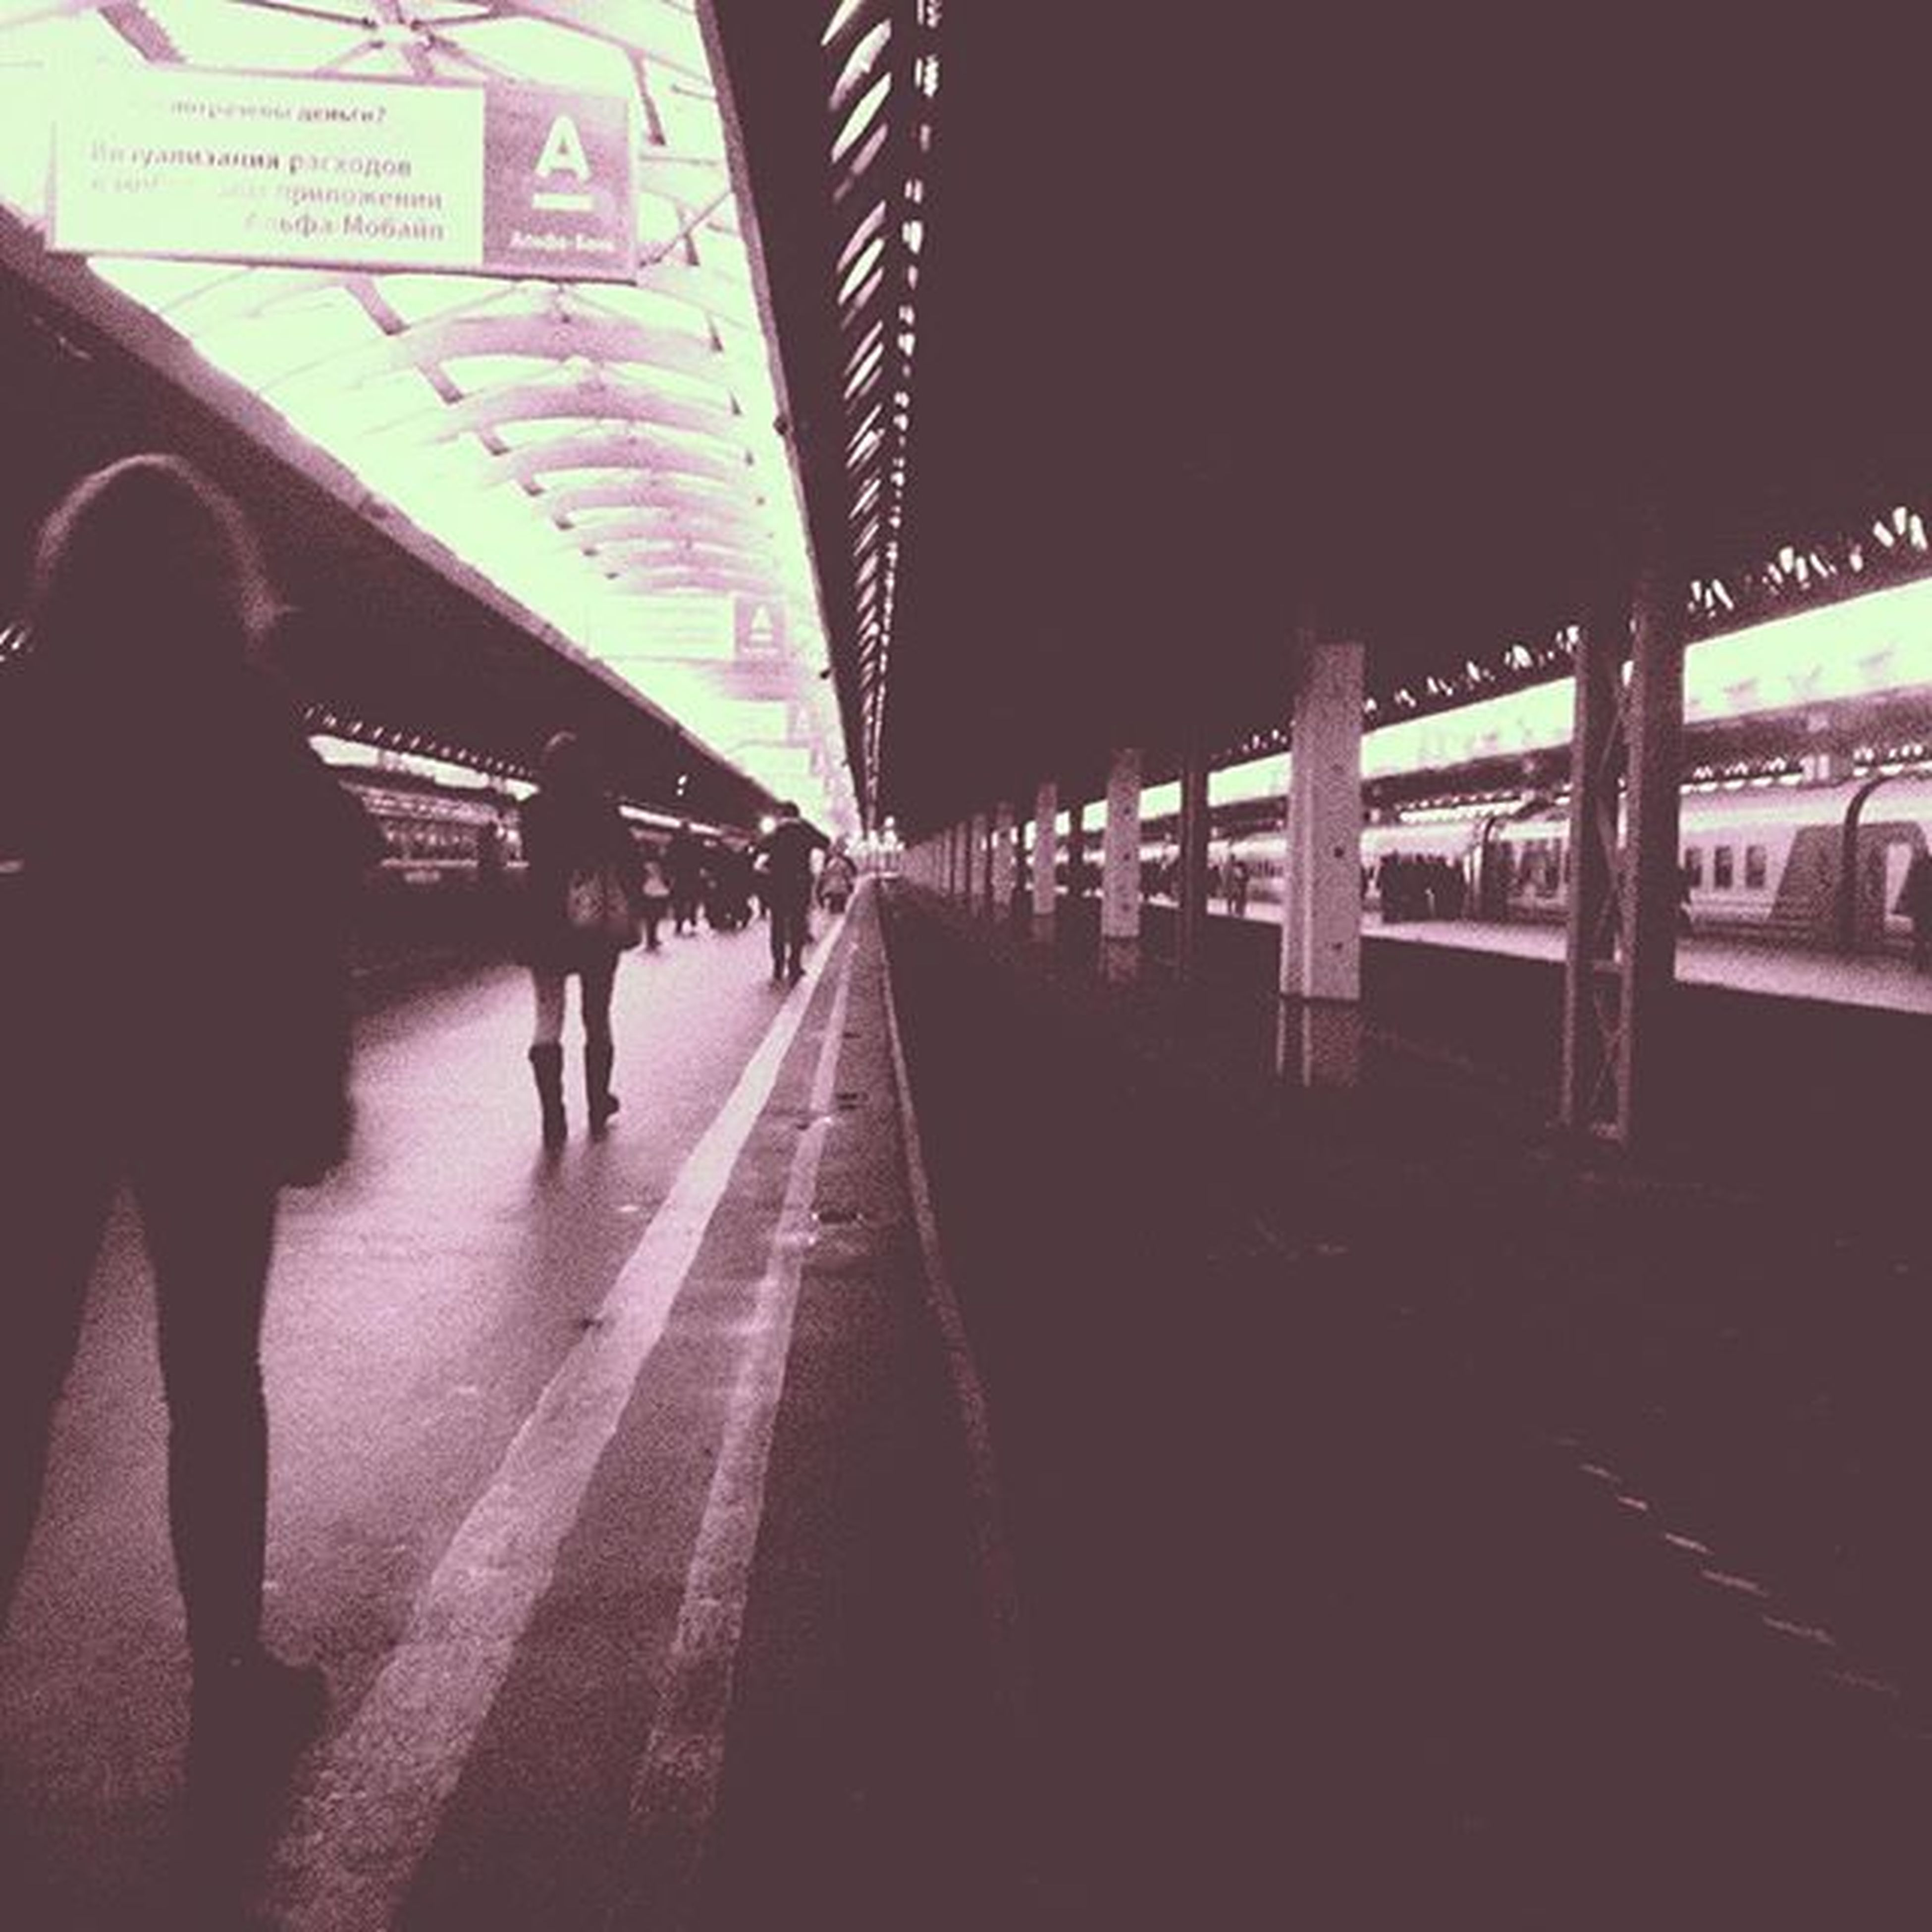 transportation, architecture, built structure, men, walking, lifestyles, person, city life, the way forward, bridge - man made structure, connection, travel, city, mode of transport, railroad station, railroad station platform, public transportation, leisure activity, rear view